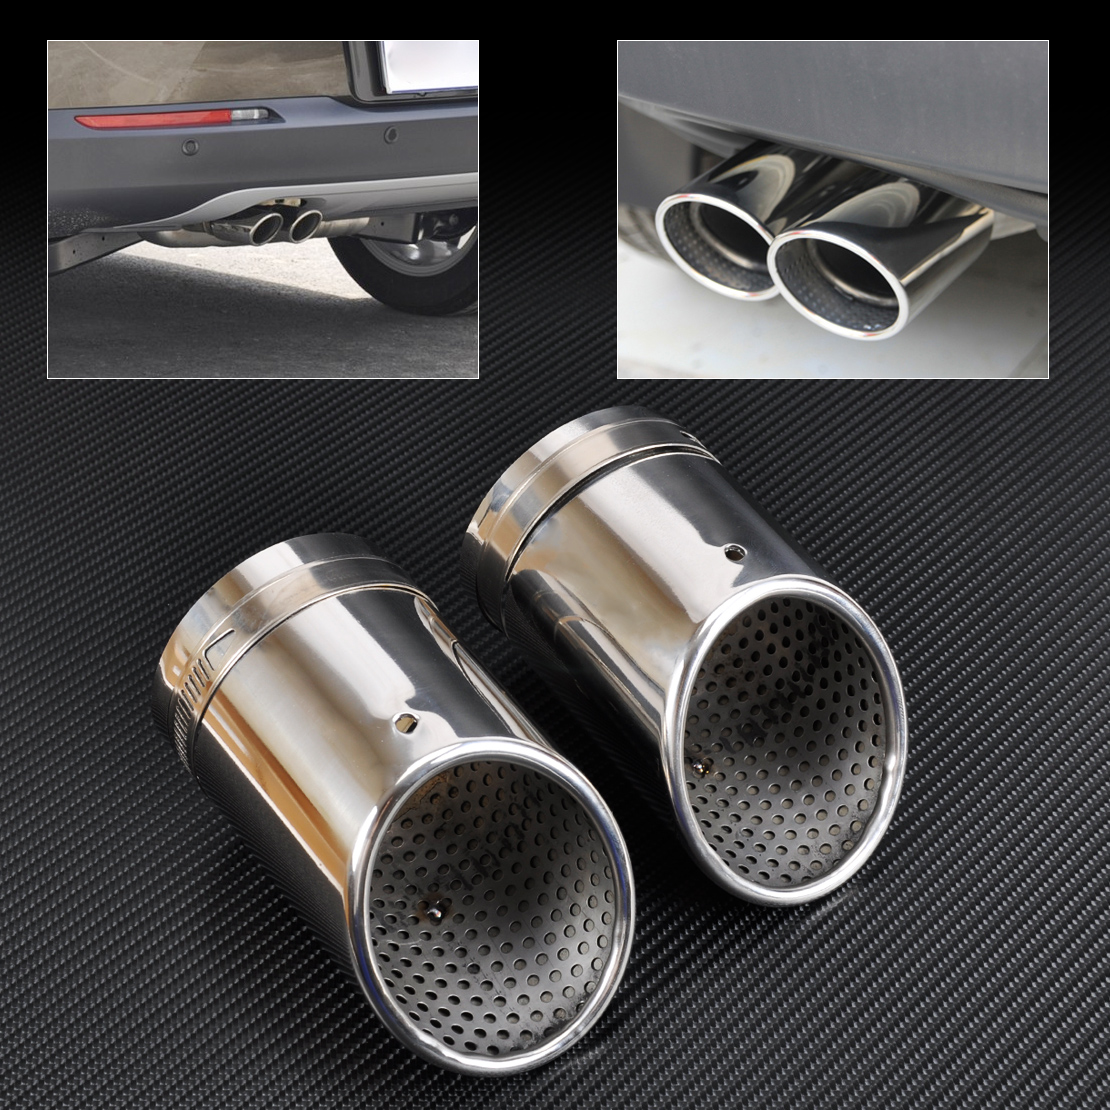 DWCX 2X STAINLESS STEEL EXHAUST TAIL REAR MUFFLER TIP PIPE TAILPIPE For VW Passat B6 2006 - 2009 2010 CC Free Shipping